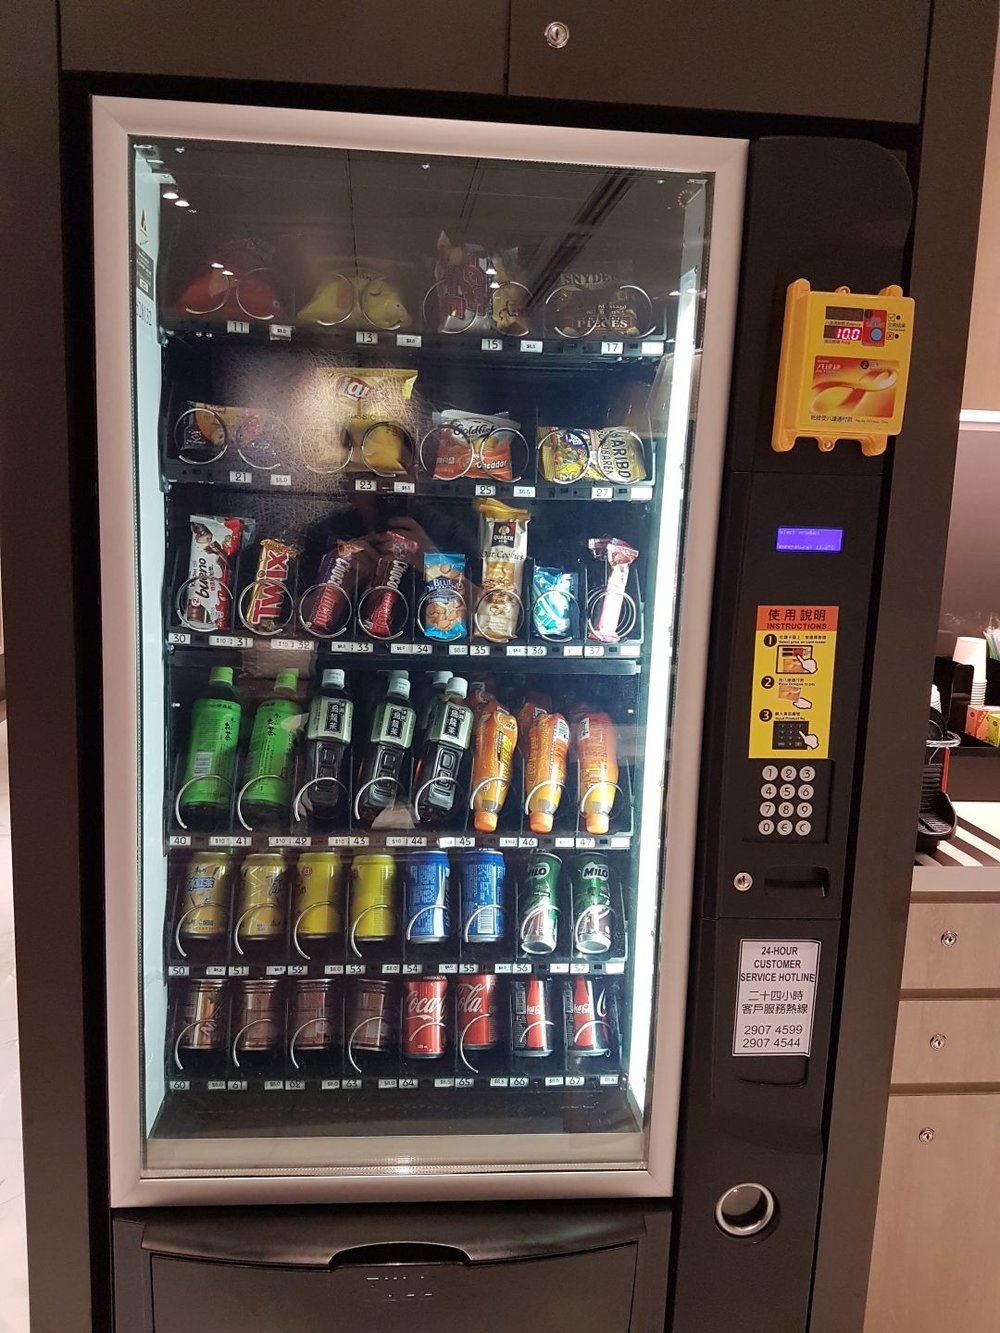 Freshup, vending machine hk, interactive, food, beverage, smart retail, convenient, vending services, professional, corporations, AIA